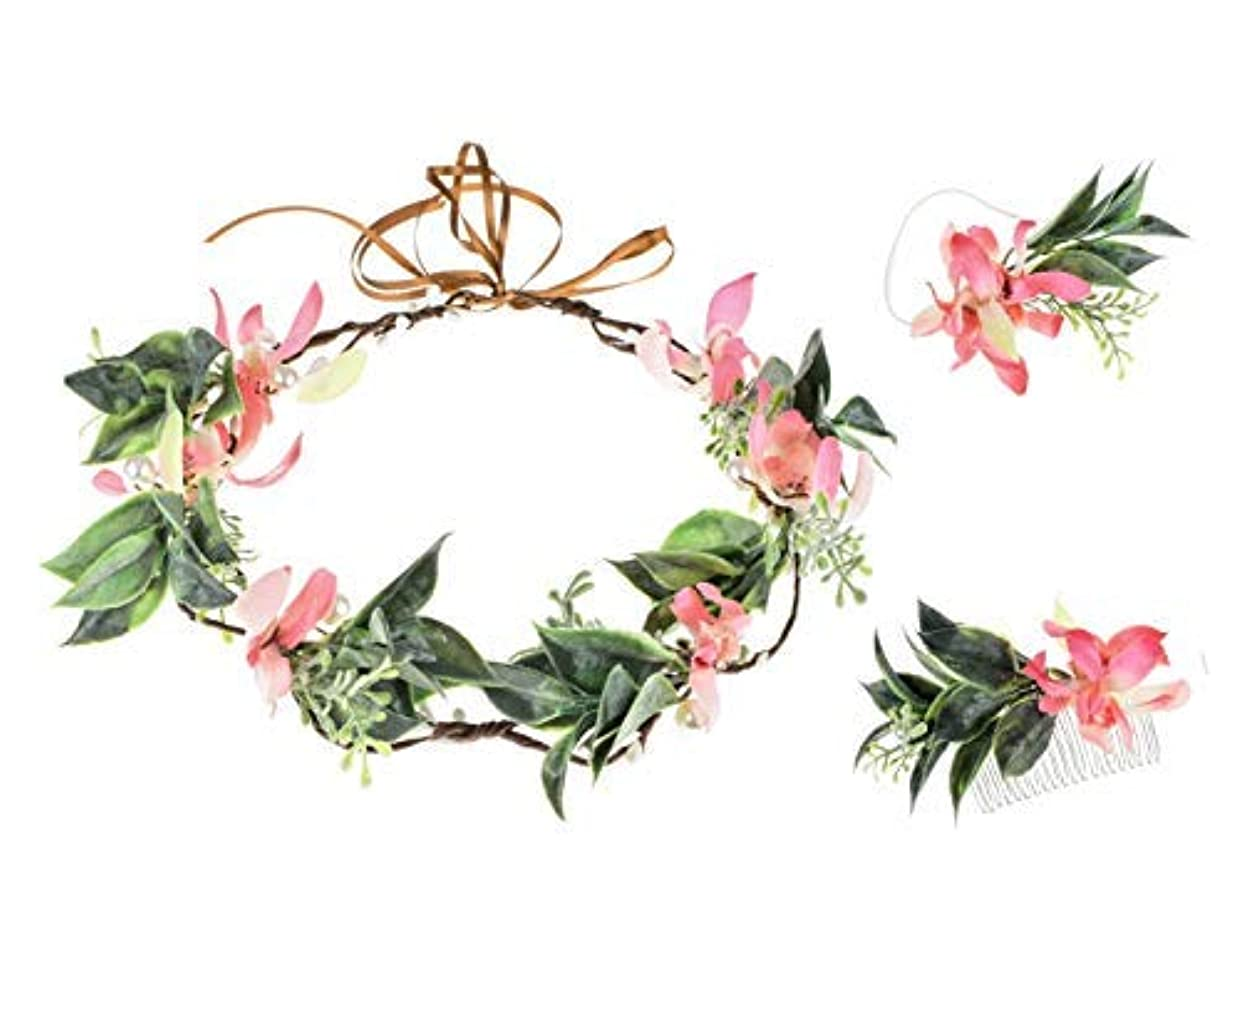 雪だるまを作る浸食学校教育Floral Fall Butterfly Orchid Flower Crown Hair Comb Green Leaf Wreath Bridal Wrist Flower Maternity Photo Props...